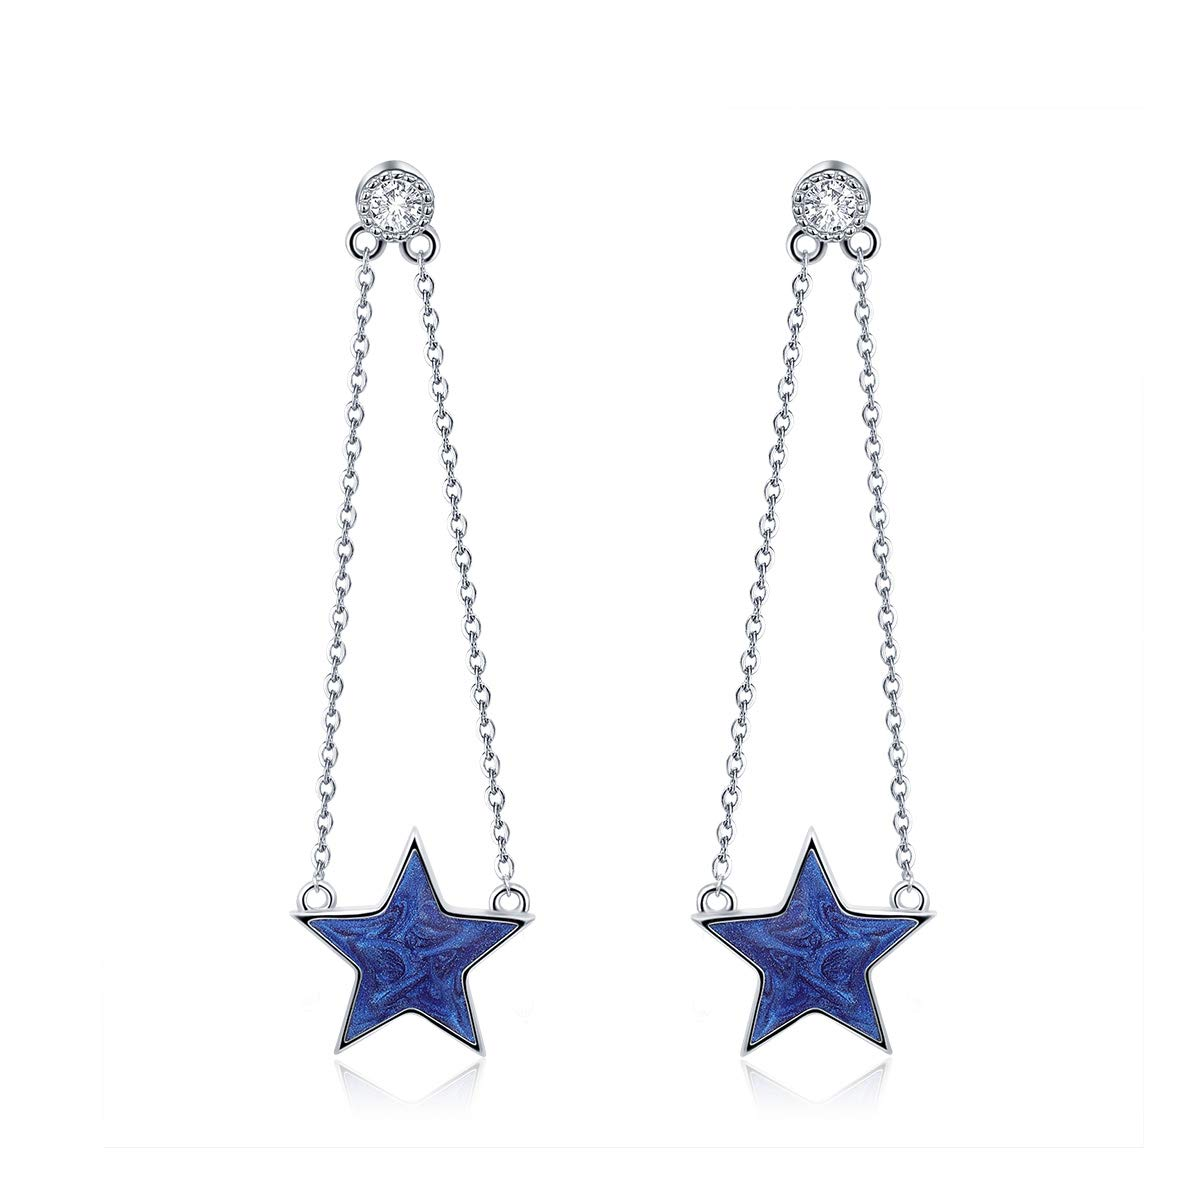 The Kiss Sparkling Star Chain 925 Sterling Silver Dangle Earrings